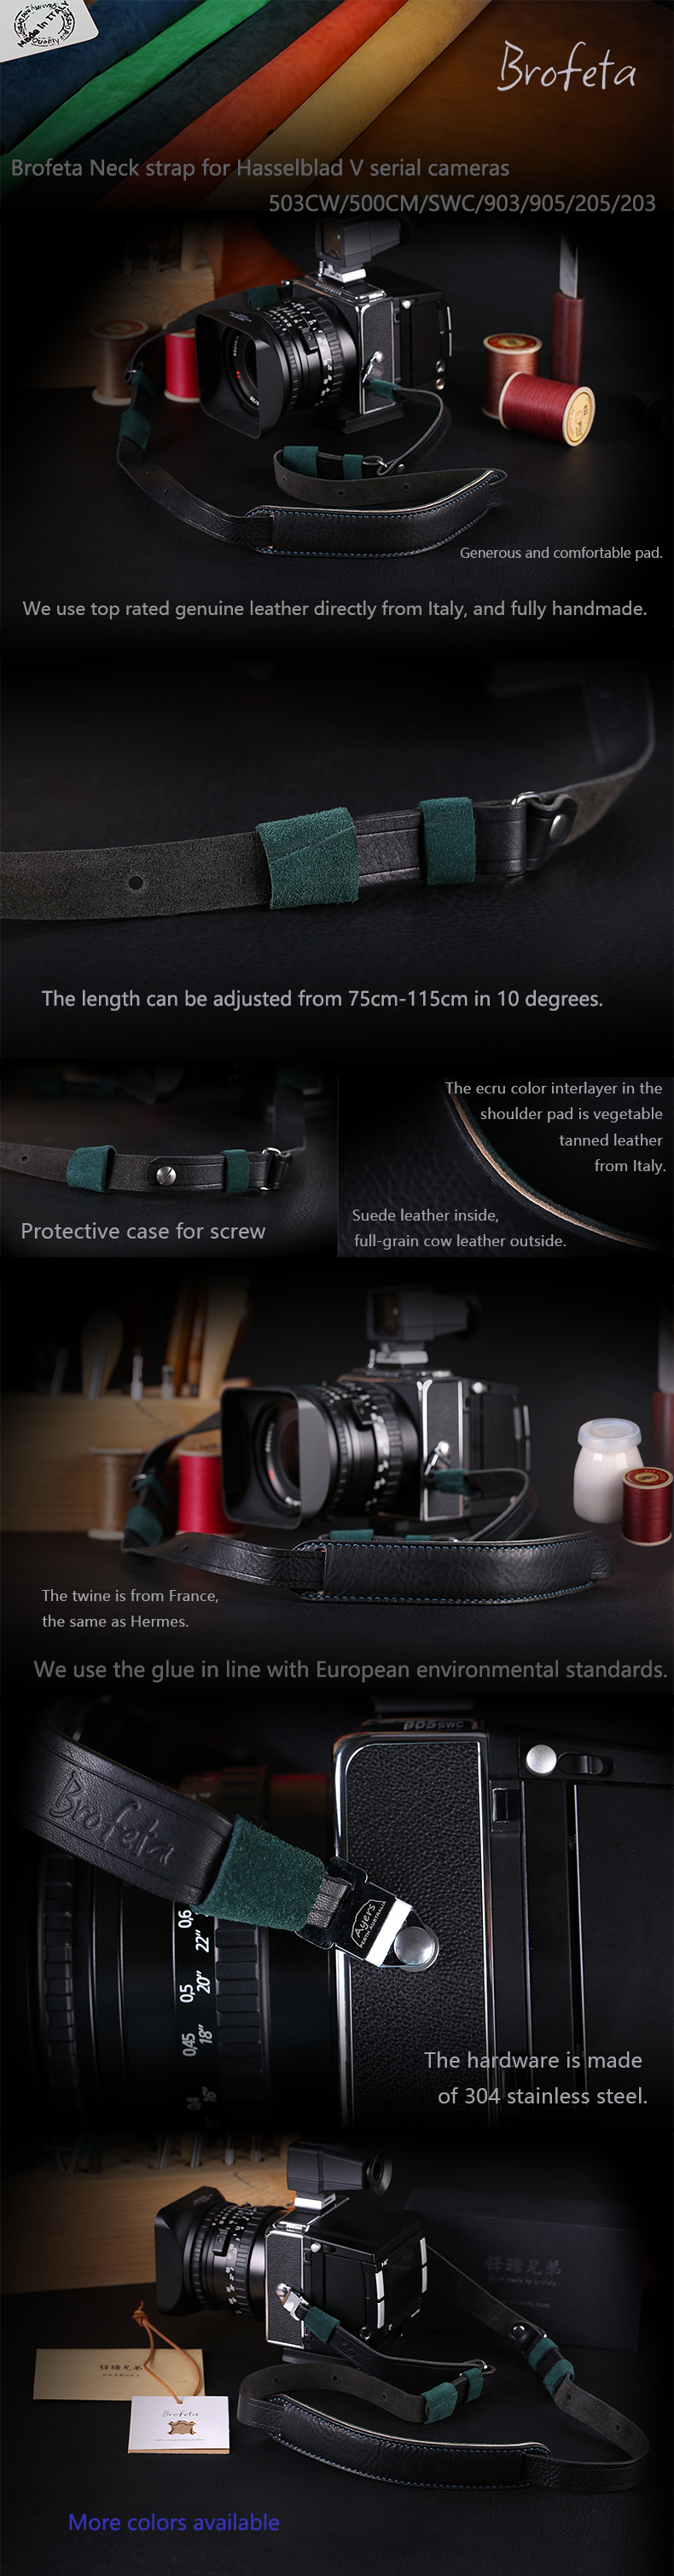 Details about Brofeta neck strap for Hasselblad 503CW 500C/M SWC/M SWC  903SWC 203FE 205 905